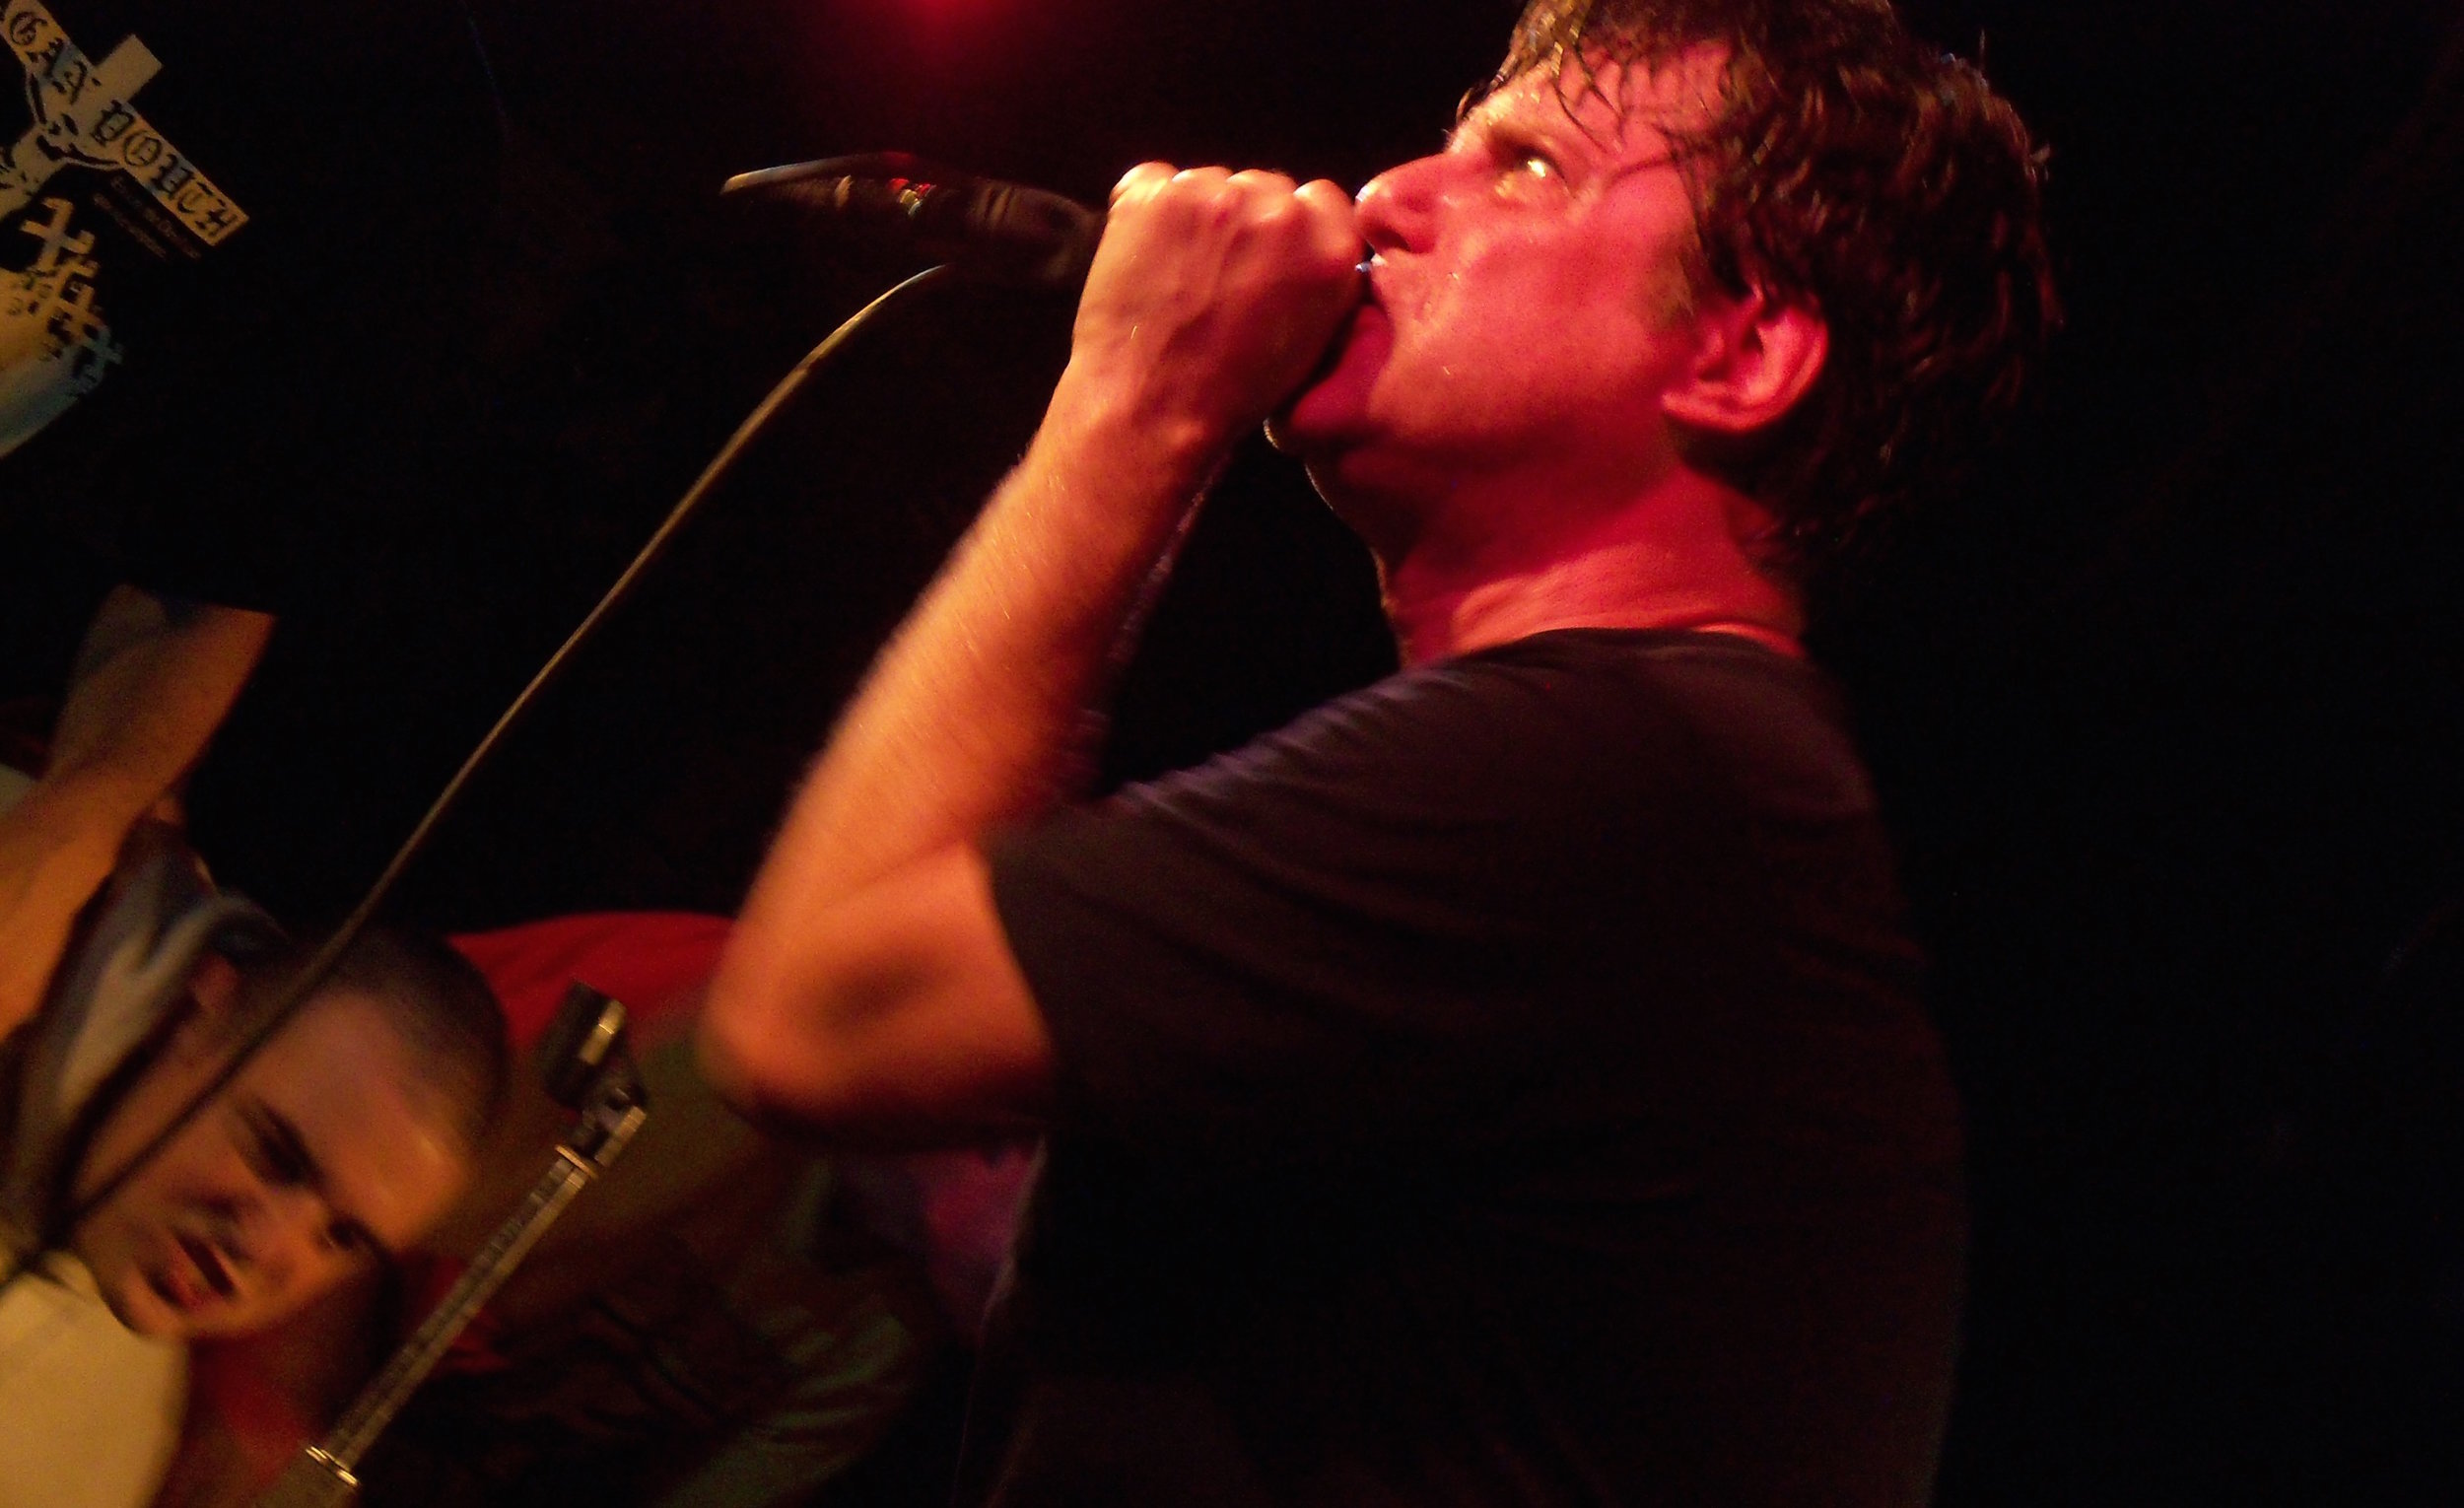 Negative Approach's John Brannon performing in 2009. Photo via  T he All-Nite Images on Flickr.